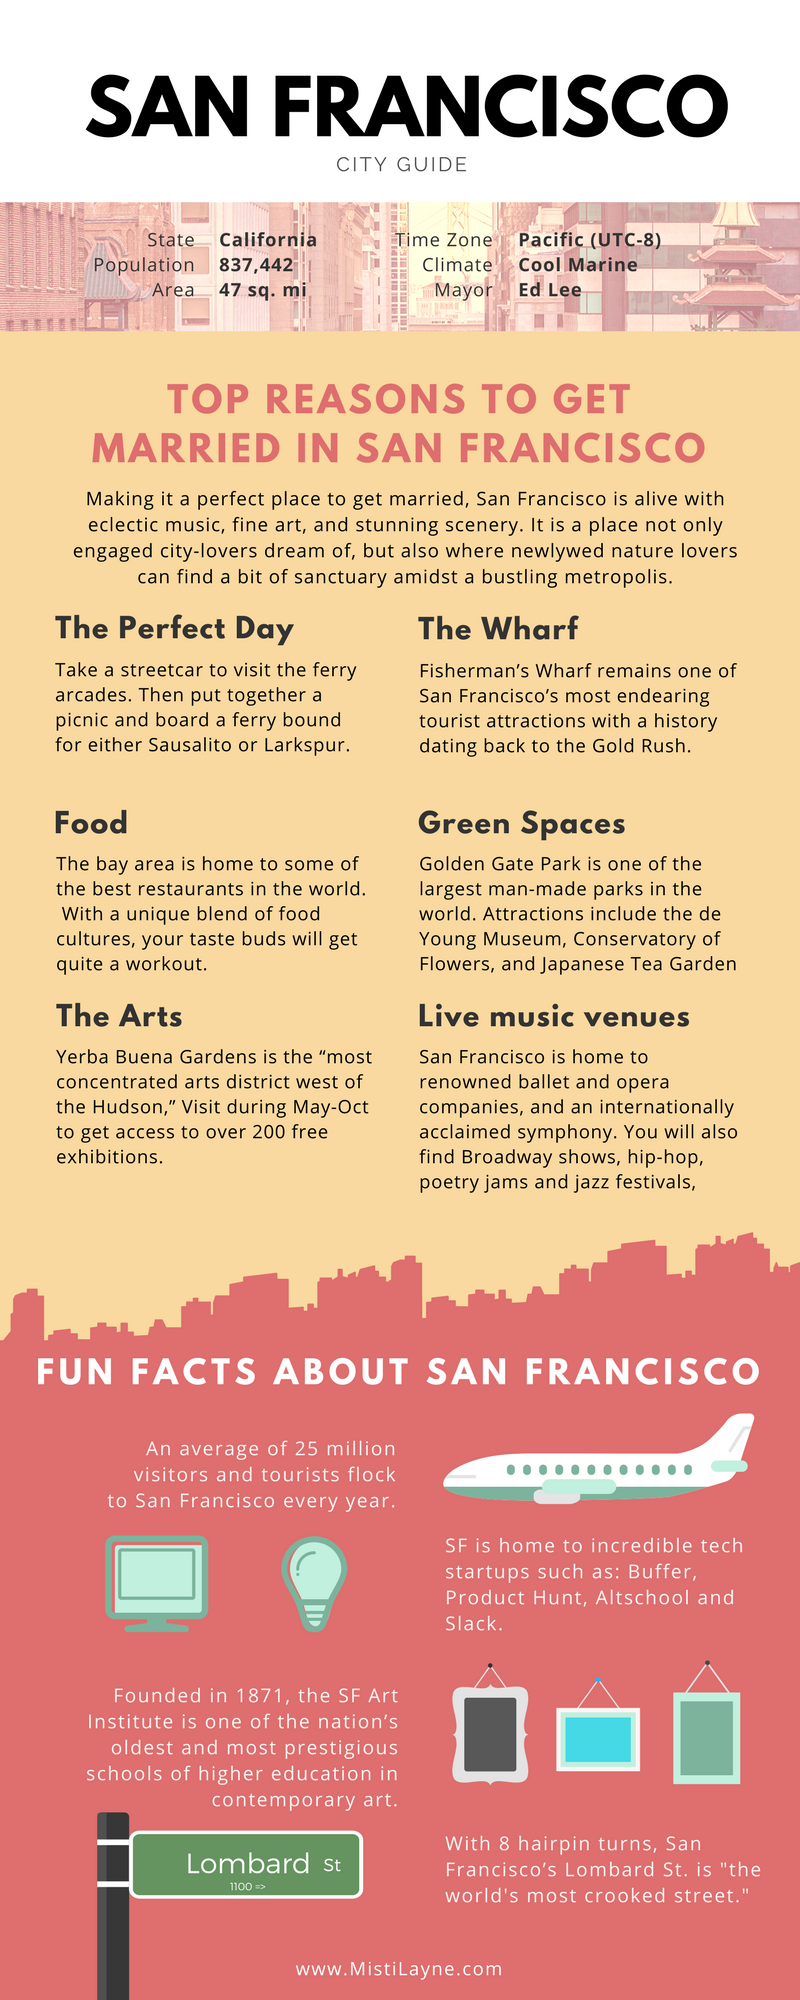 top reasons to get married in San Francisco